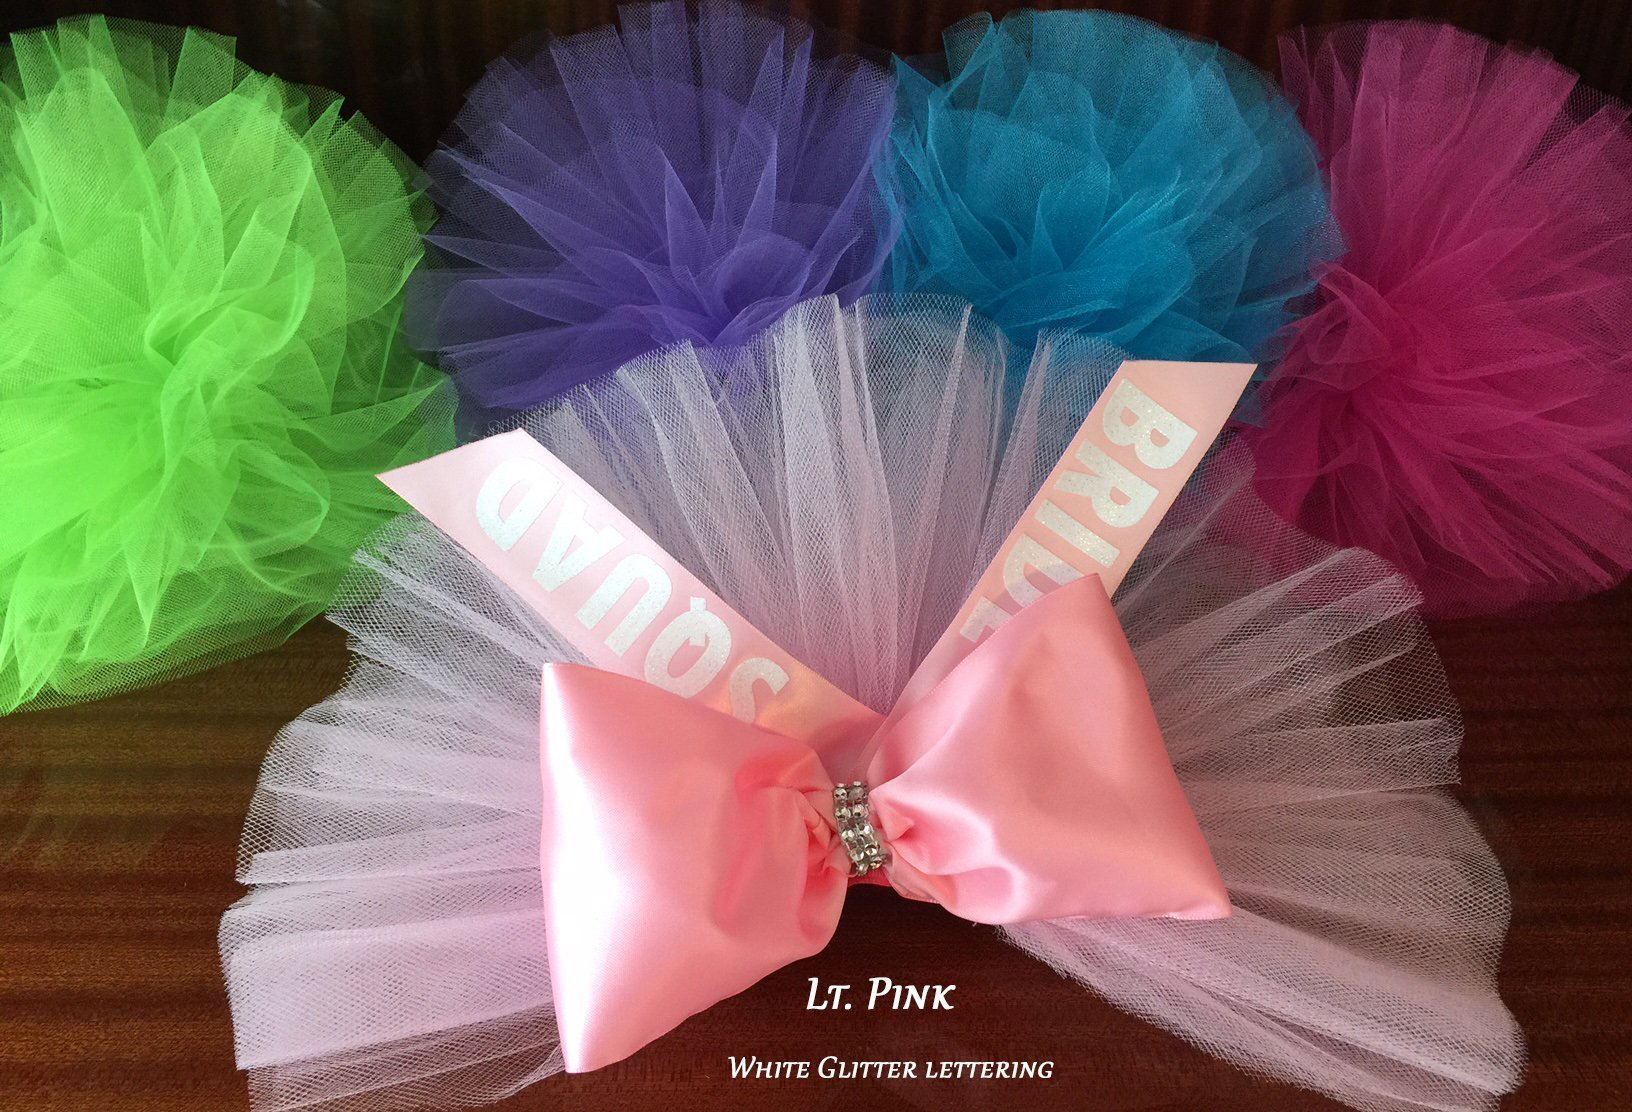 Bikini Veil, Bride's Squad, Bride's Possee, Bridal Shower, Bachelorette Party, Booty Veil, Butt Veil - PERSONALIZED colors available in tulle, ribbon and lettering by SashANation